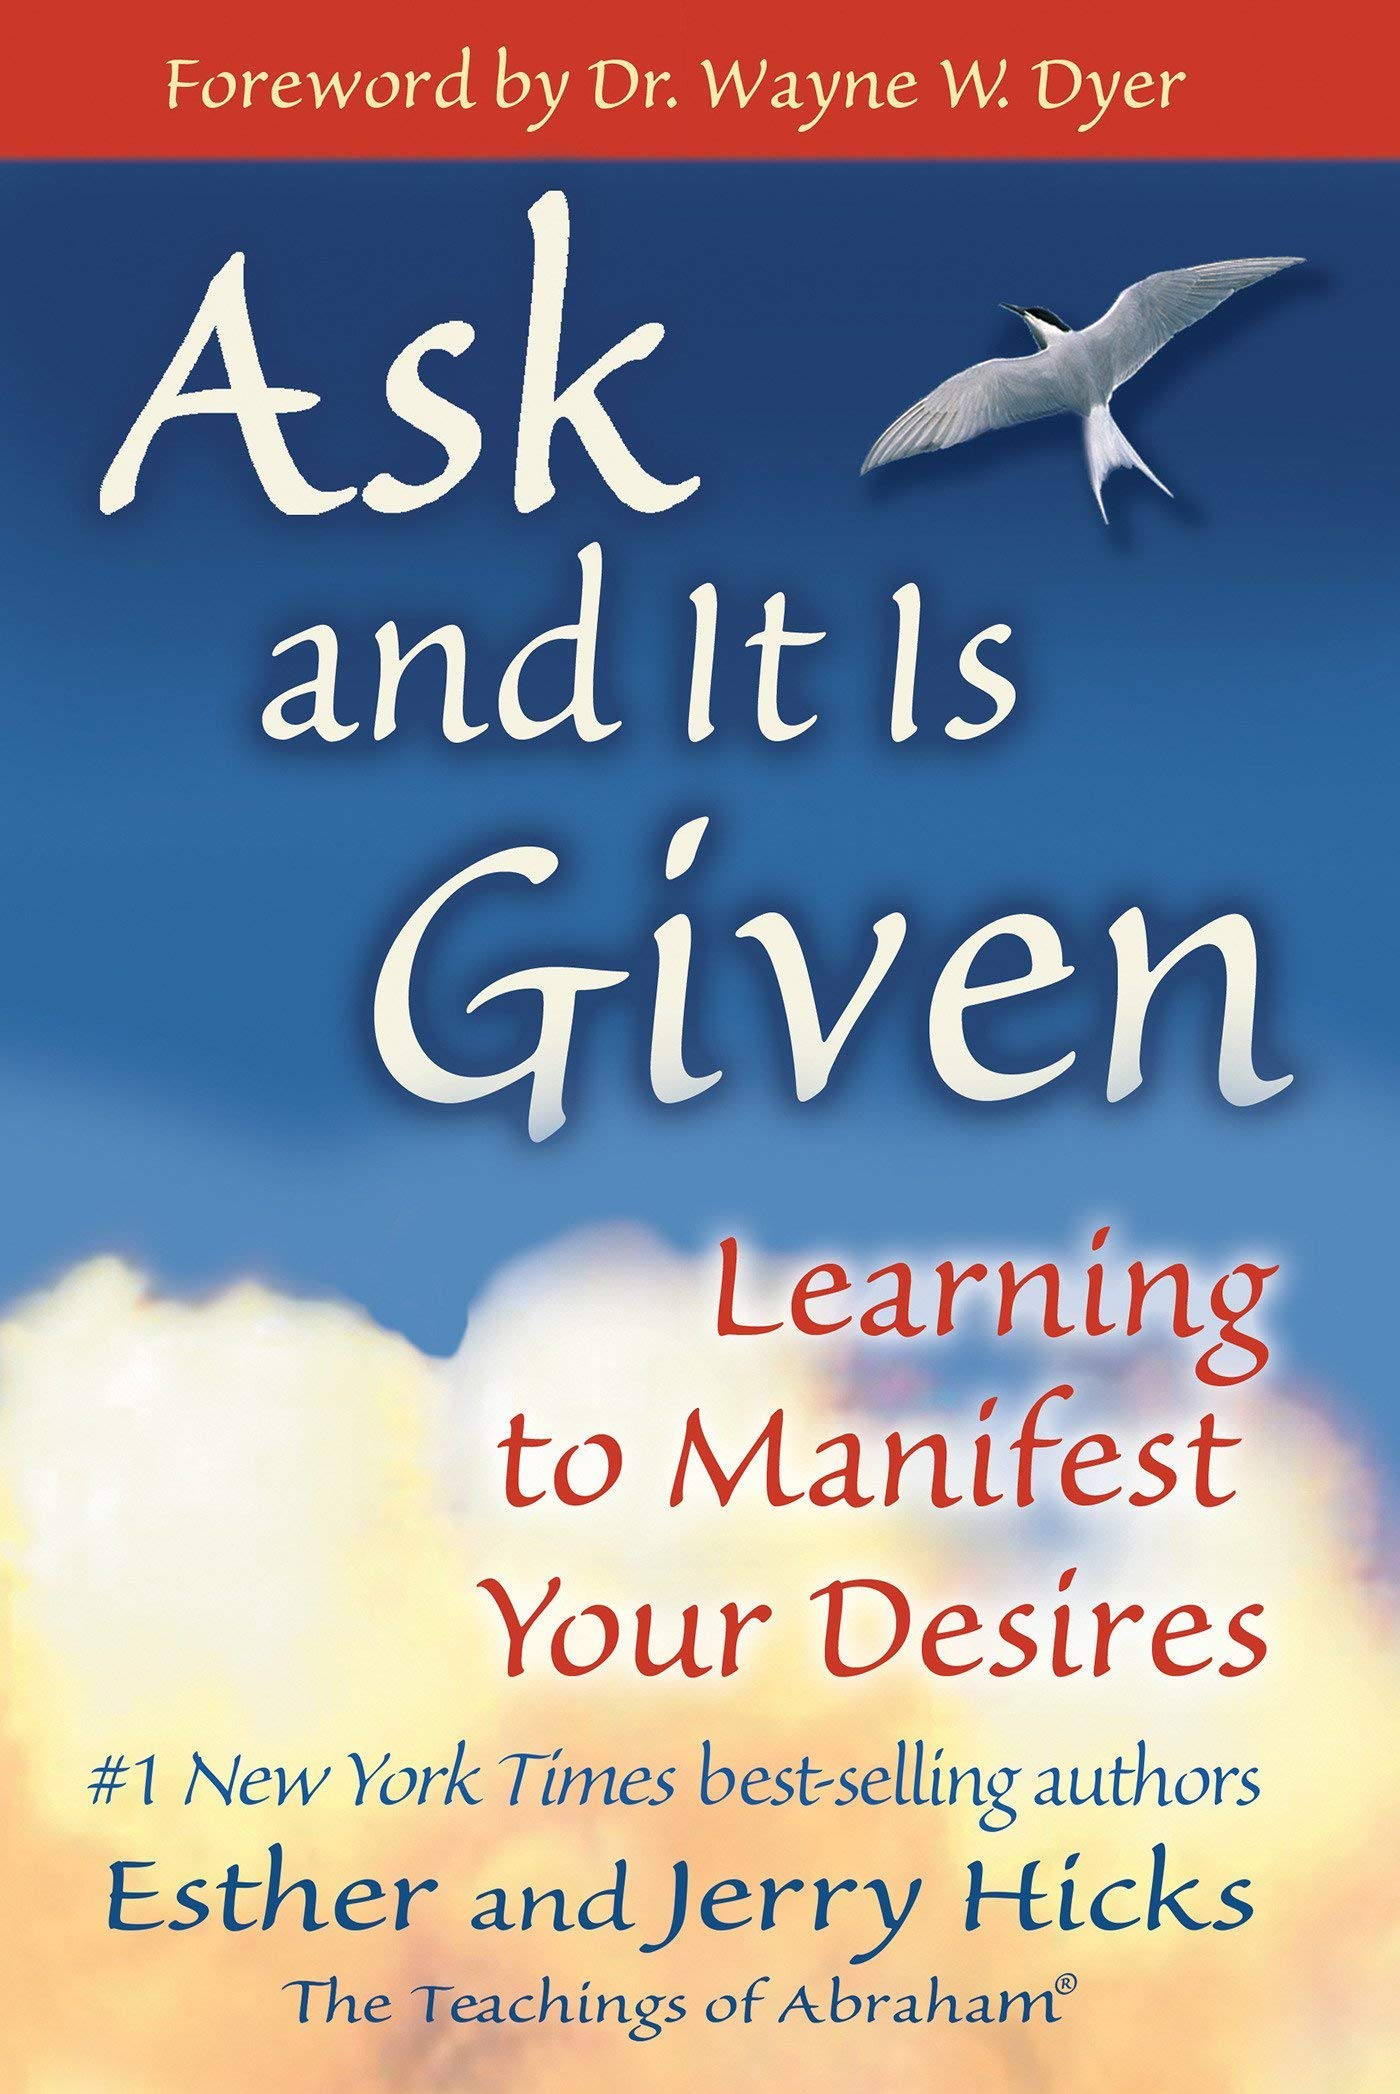 ask and it is given: Learning to Manifest Your Desires - Esther & Jerry HicksThe Teachings of Abraham